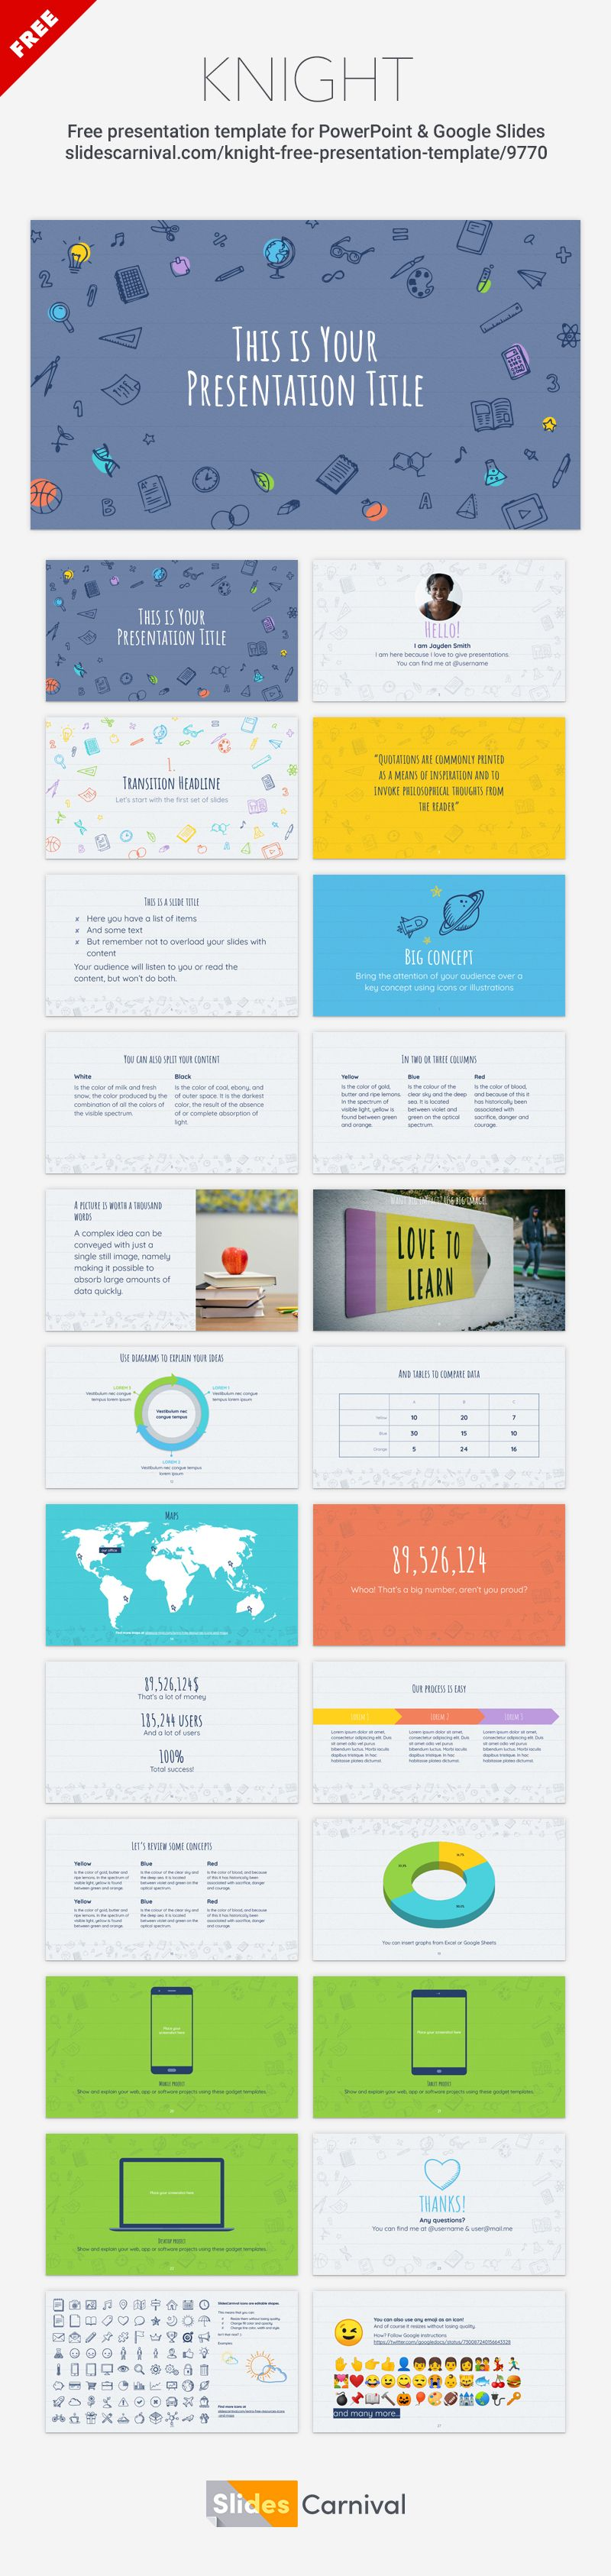 Free Sketchnotes Powerpoint Template Google Slides Theme For Education Presentation Template Free Powerpoint Templates Templates